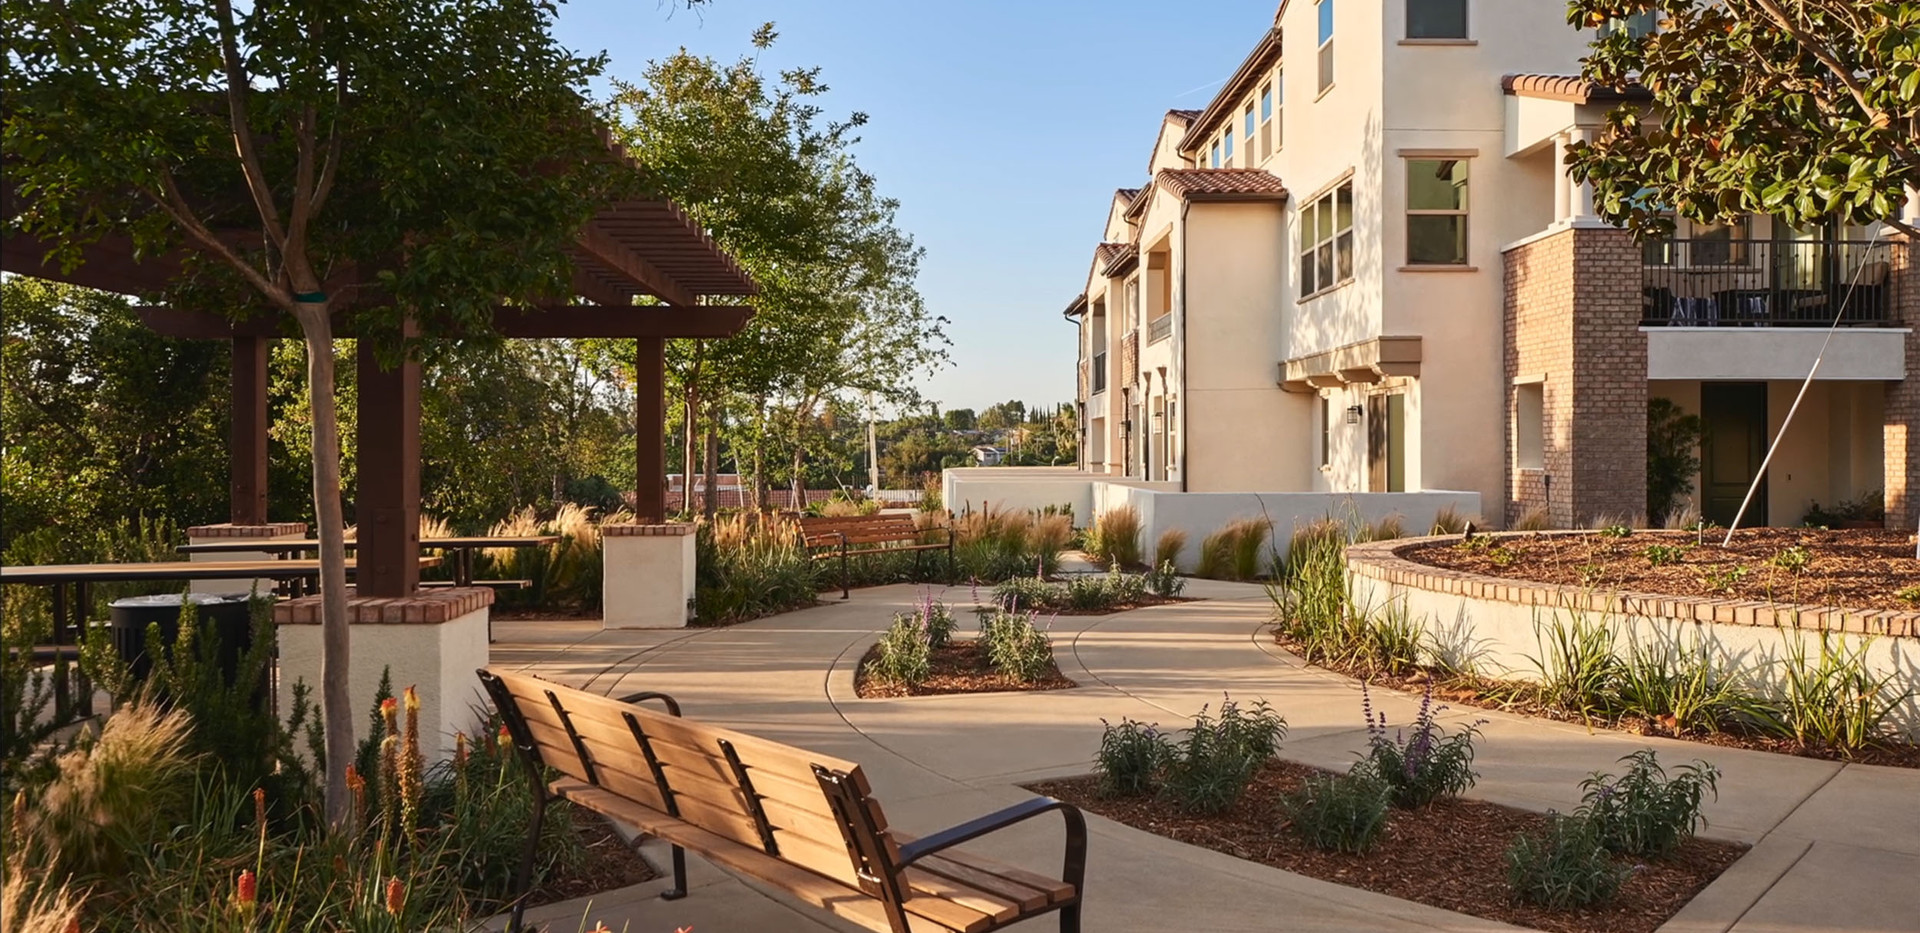 The Oaks Collection - Thousand Oaks - By City Ventures